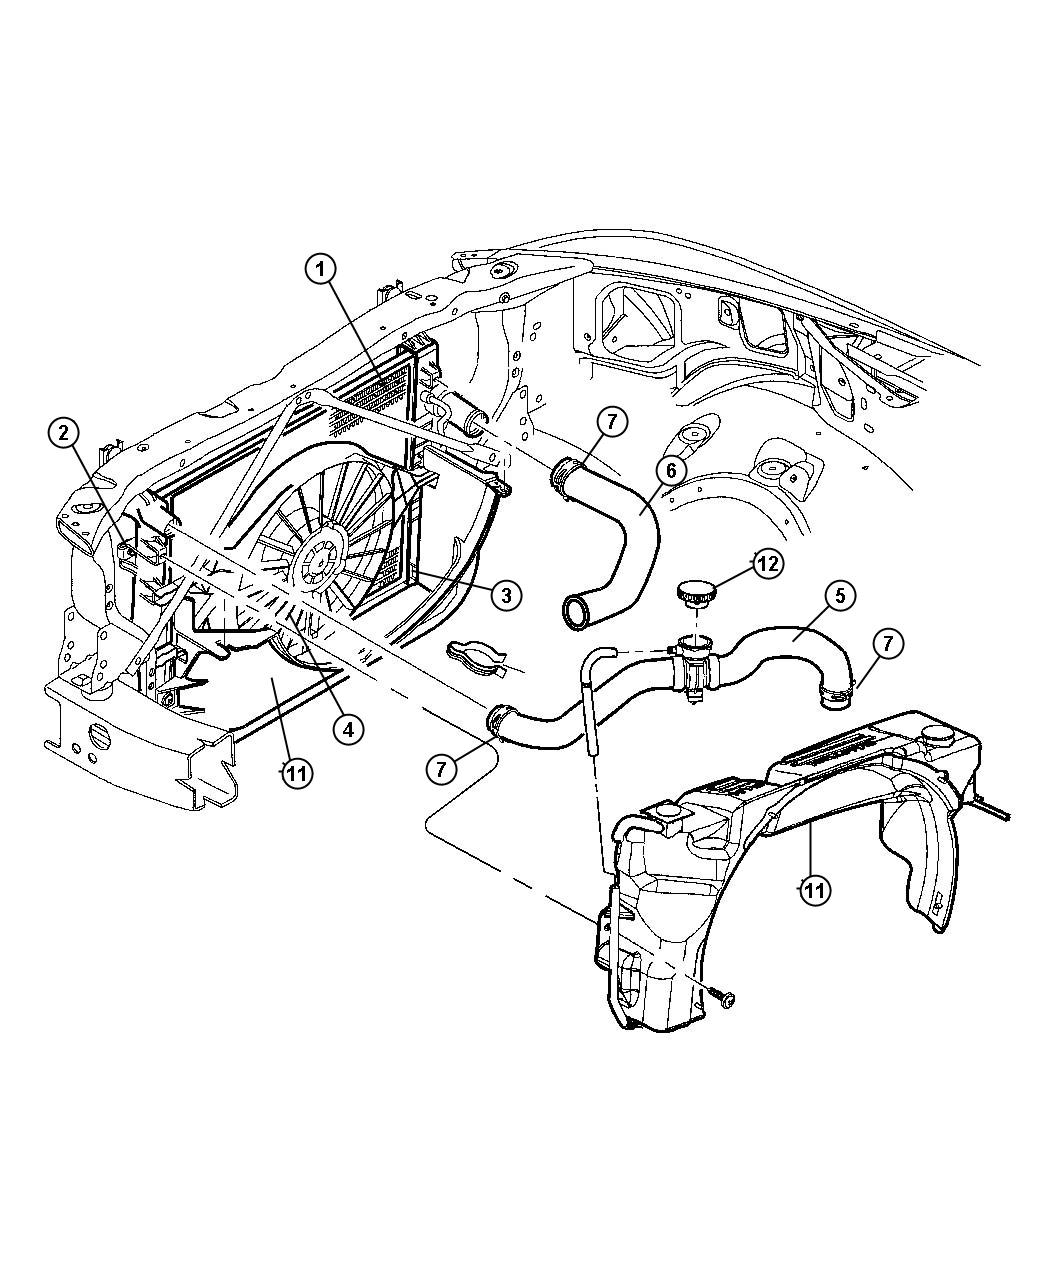 2000 dodge durango radiator and related parts  4 7l engine